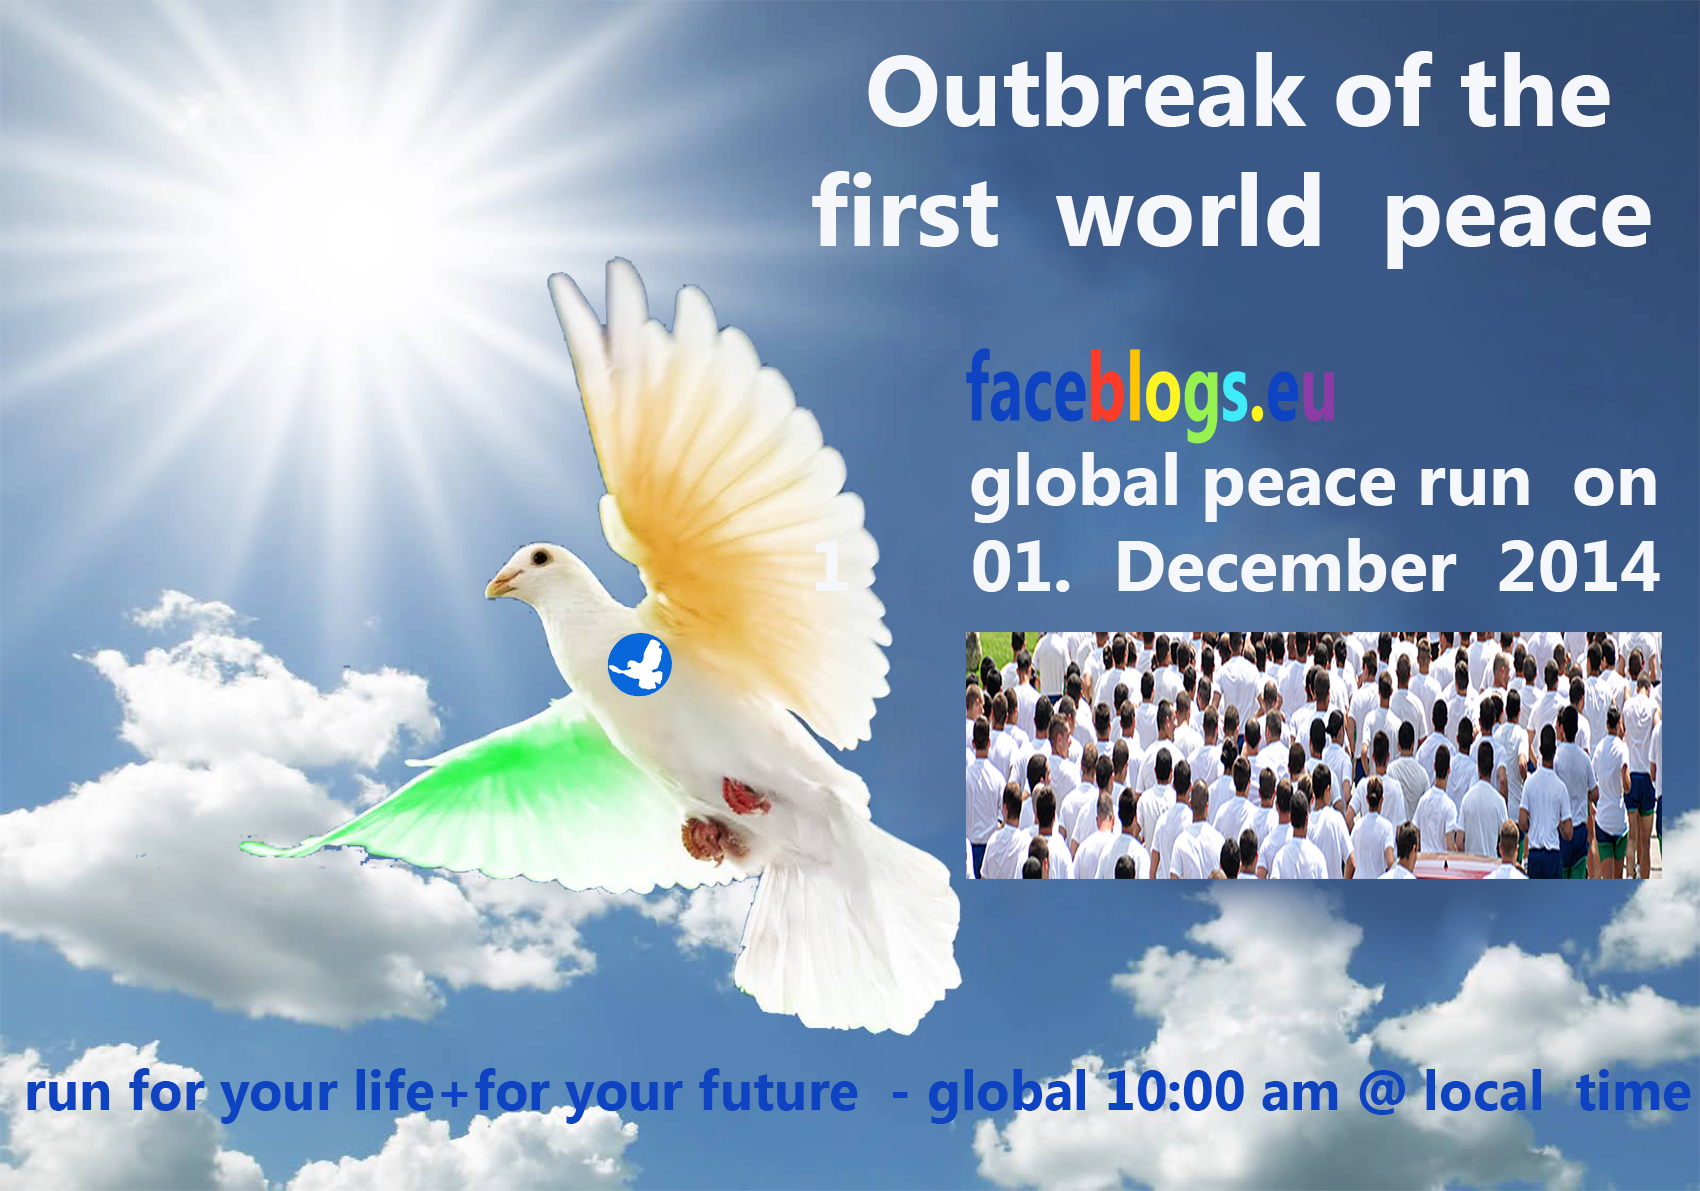 global peace run --- outbreak of first world peace